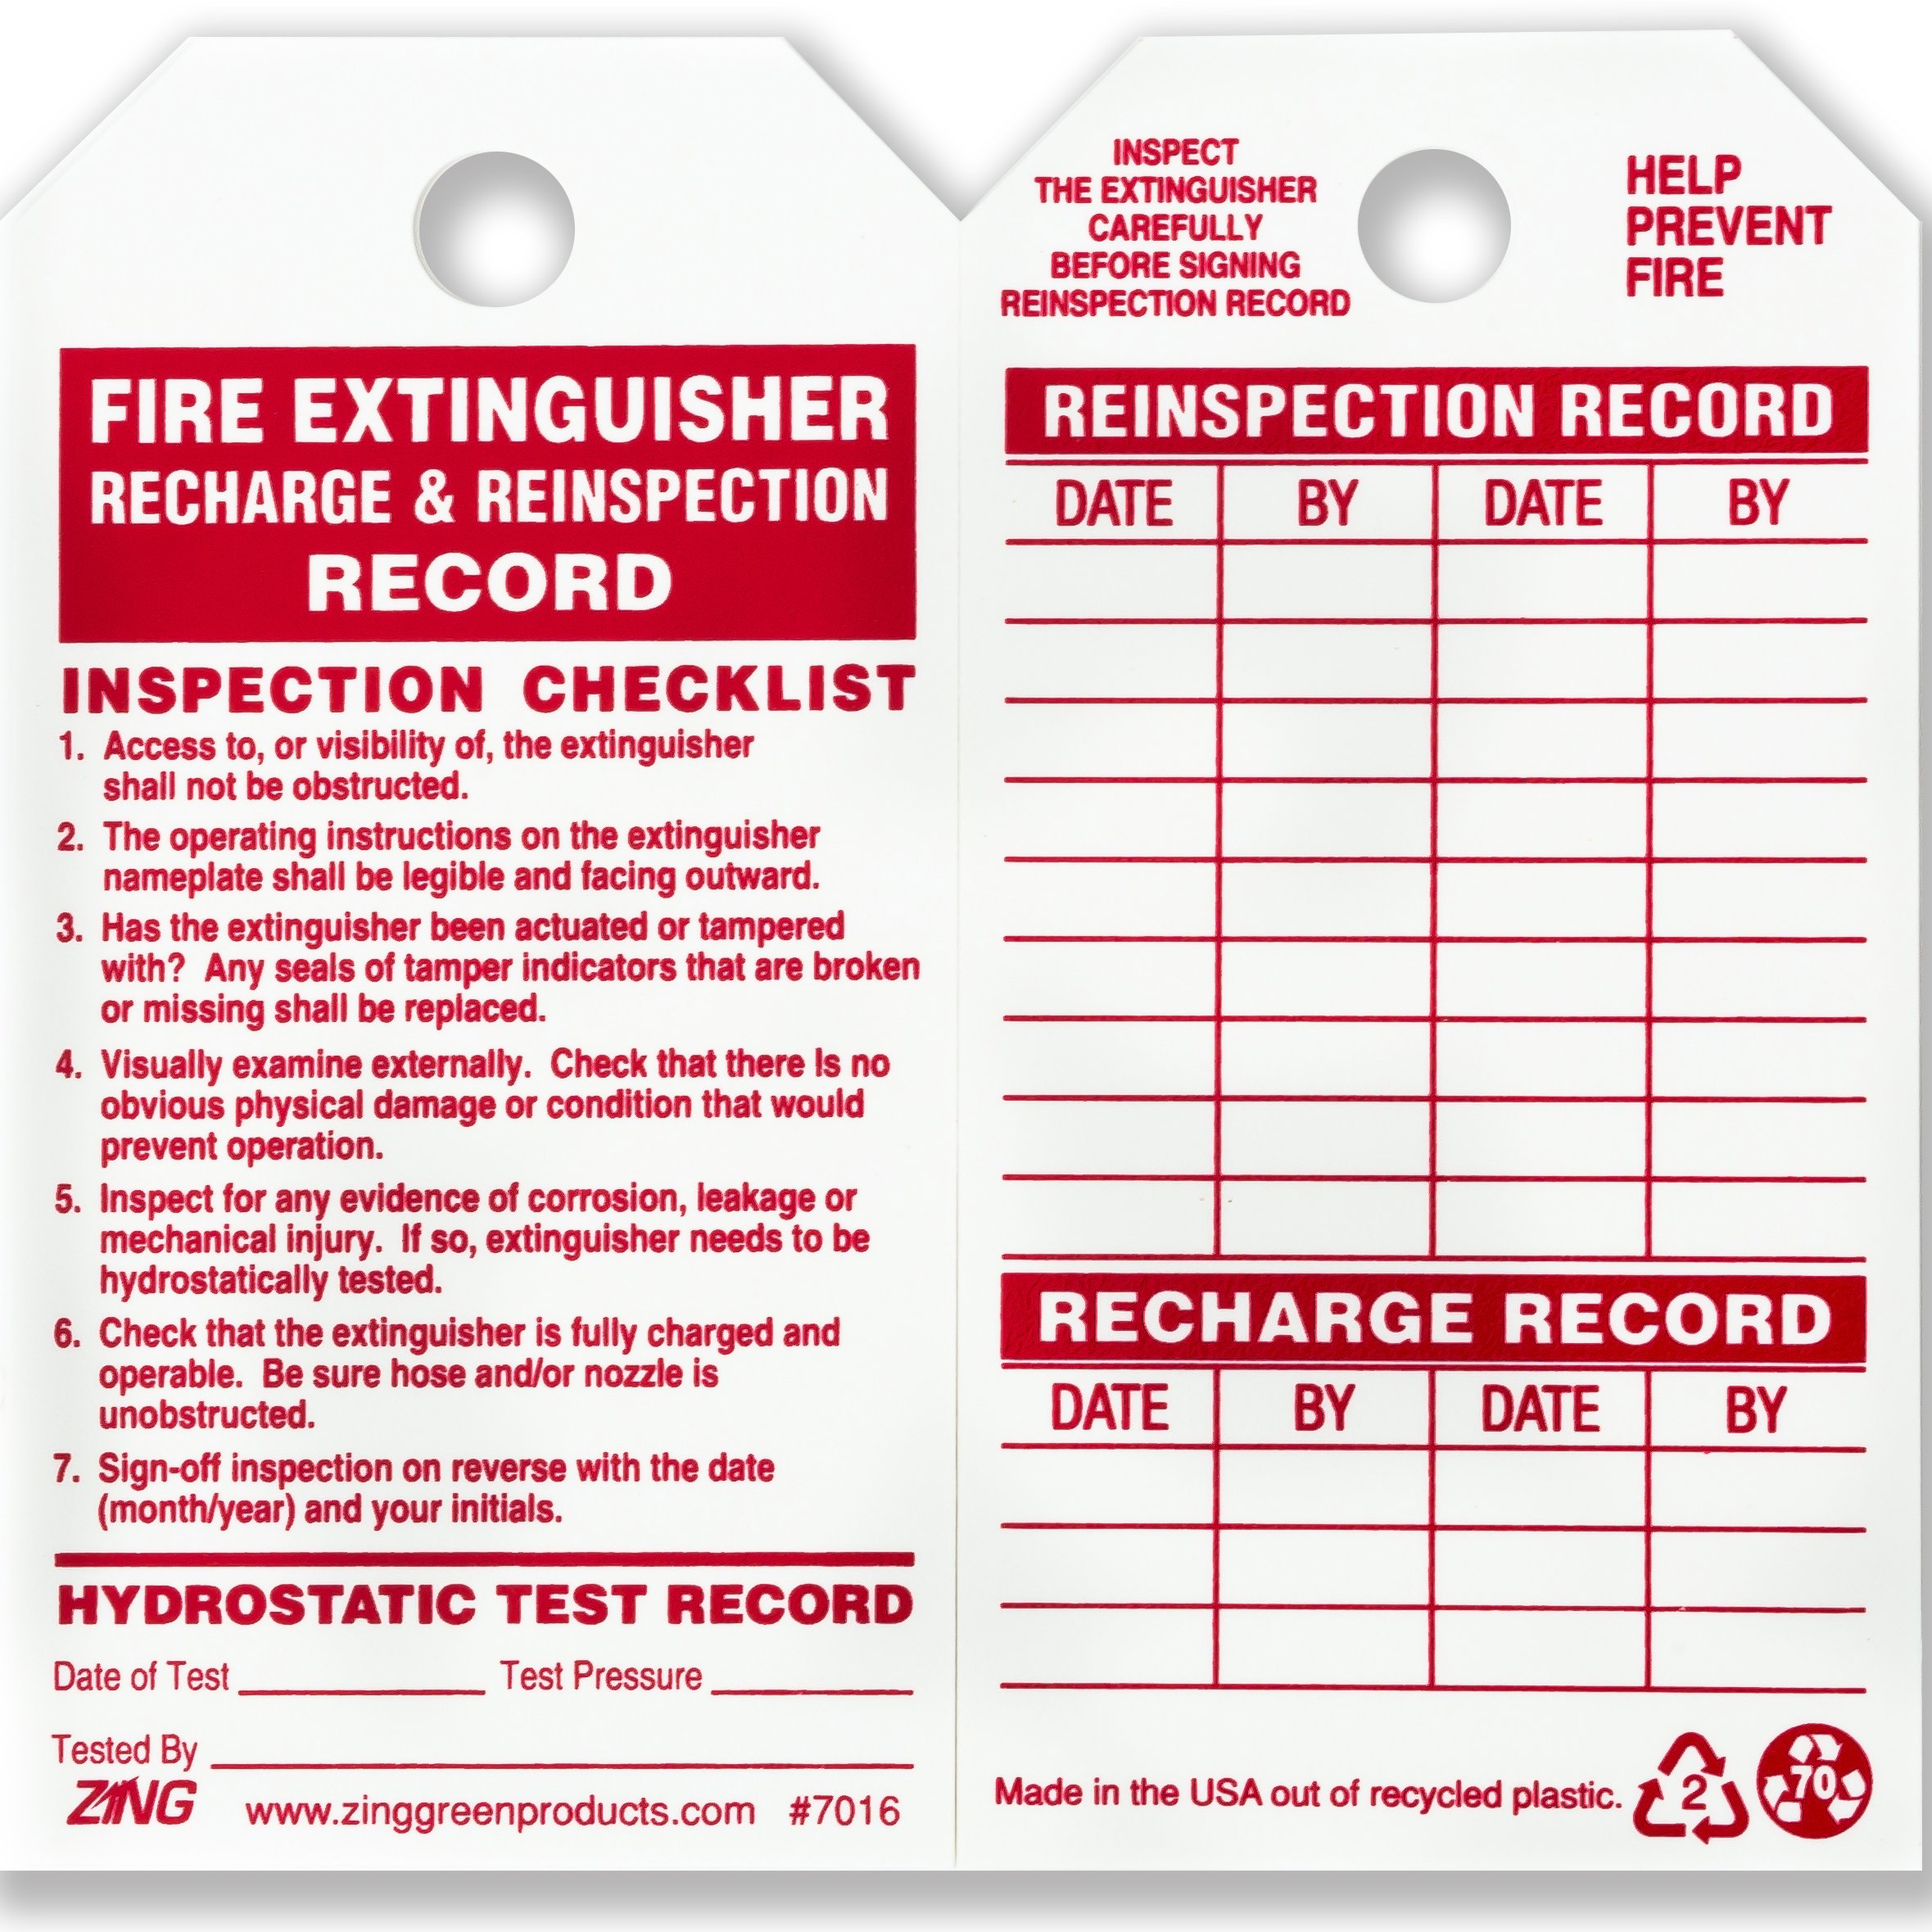 ZING 7016 Eco Safety Tag, Fire Extinguisher, 5.75Hx3W, 10 Pack by Zing Green Products